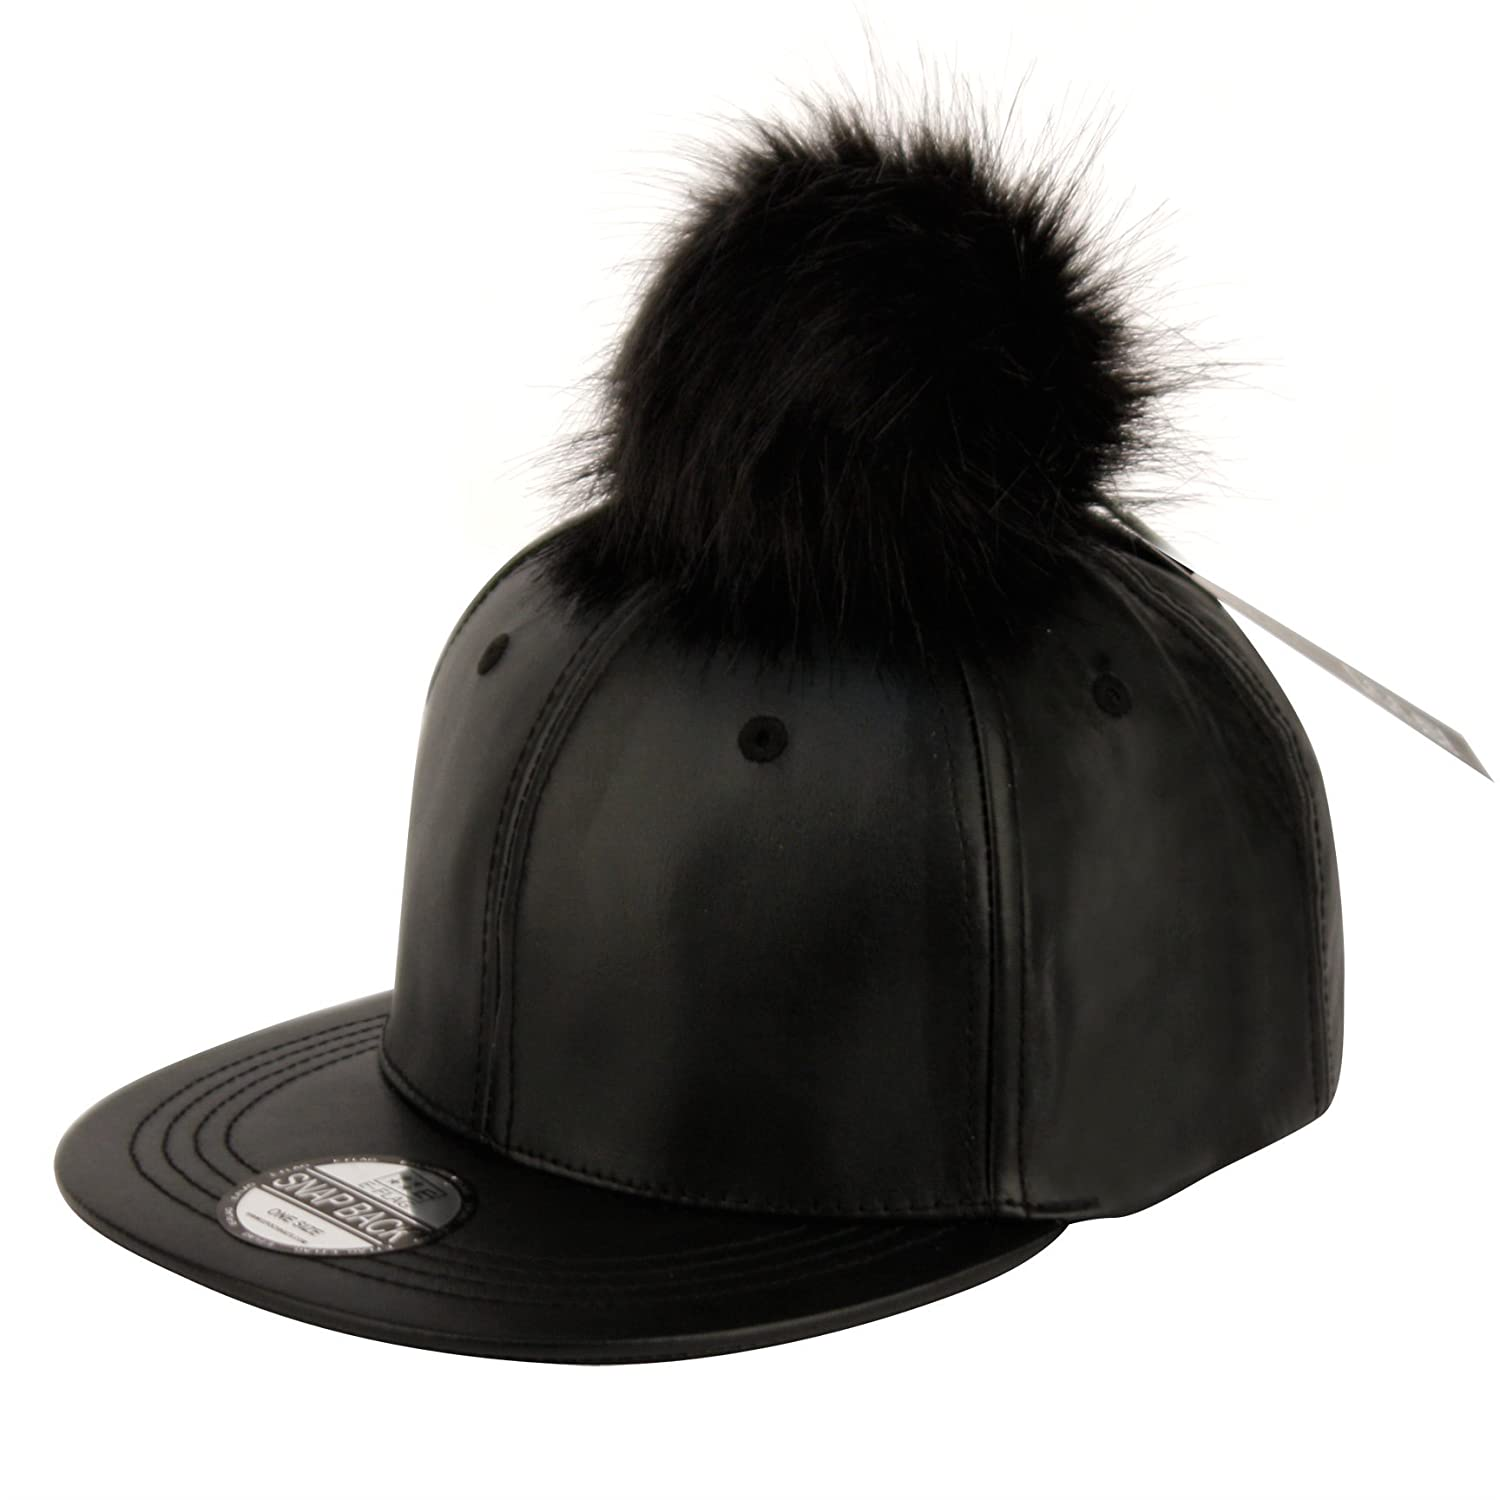 White baseball caps for crafts - Faux Leather Pom Pom With Snapback Baseball Cap At Amazon Men S Clothing Store